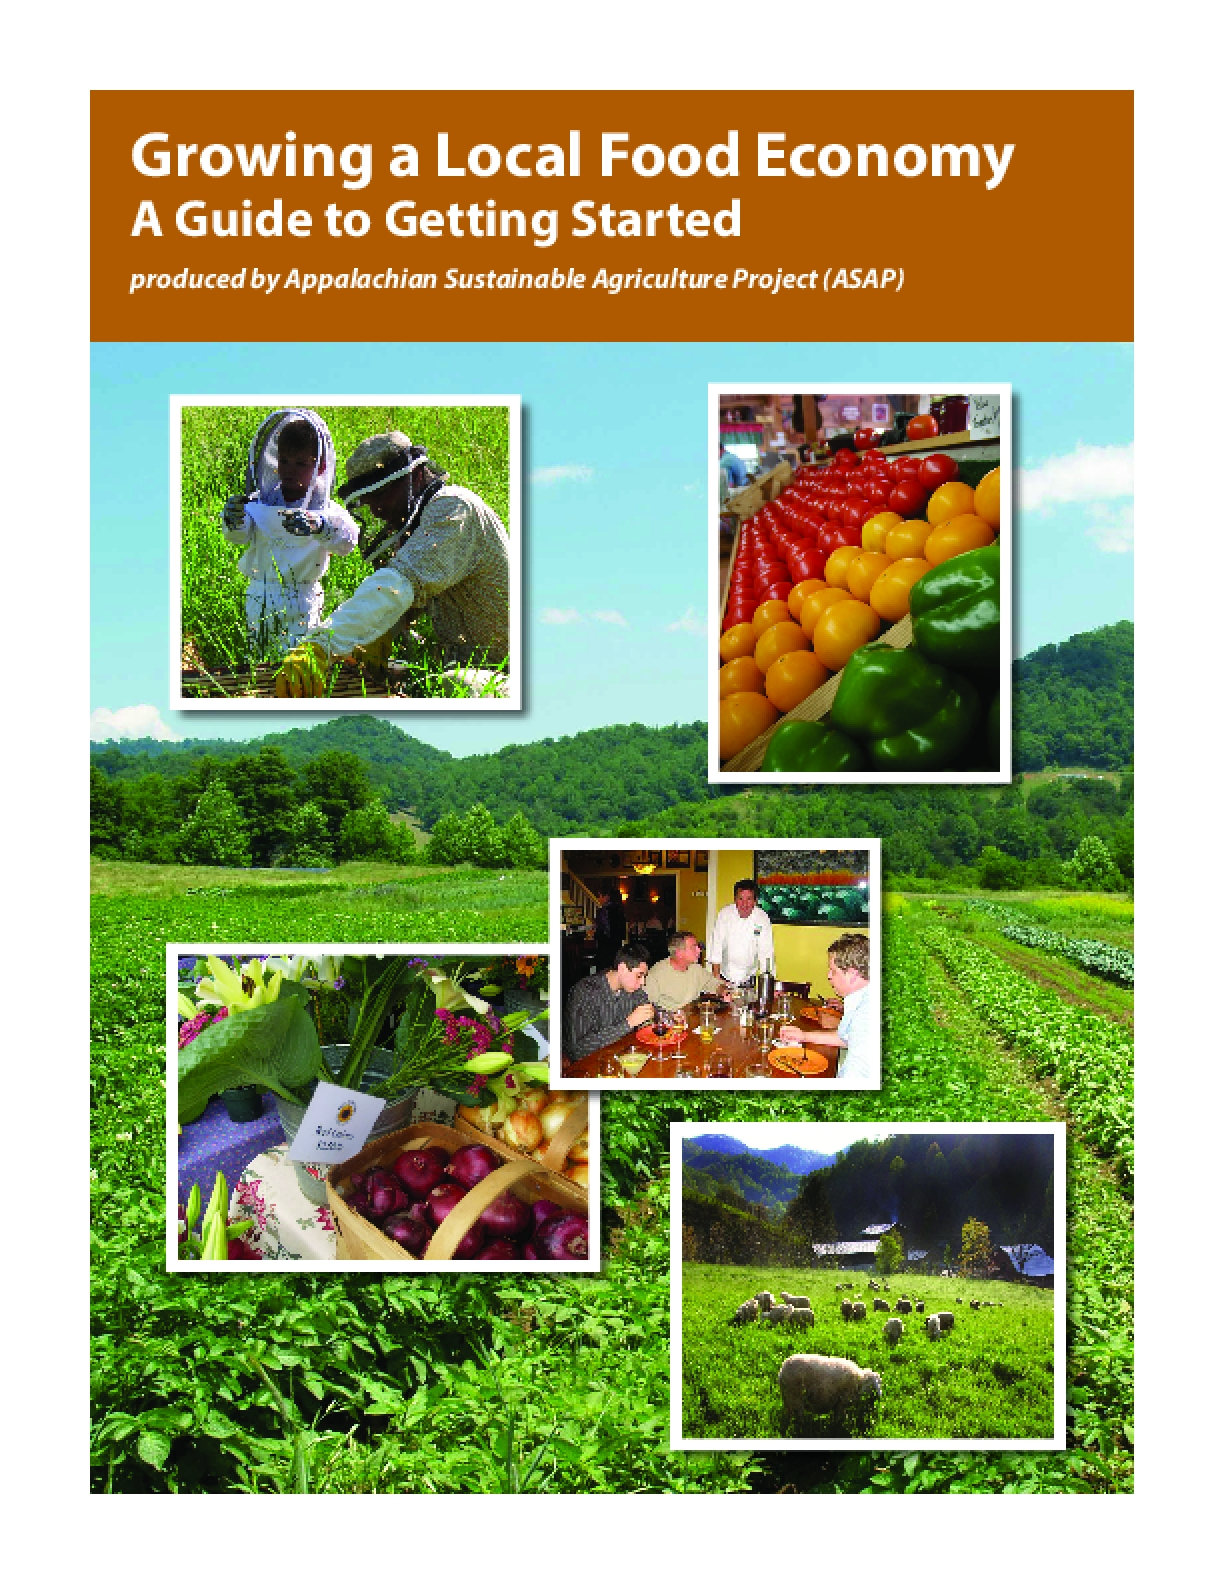 Growing a Local Food Economy: A Guide to Getting Started